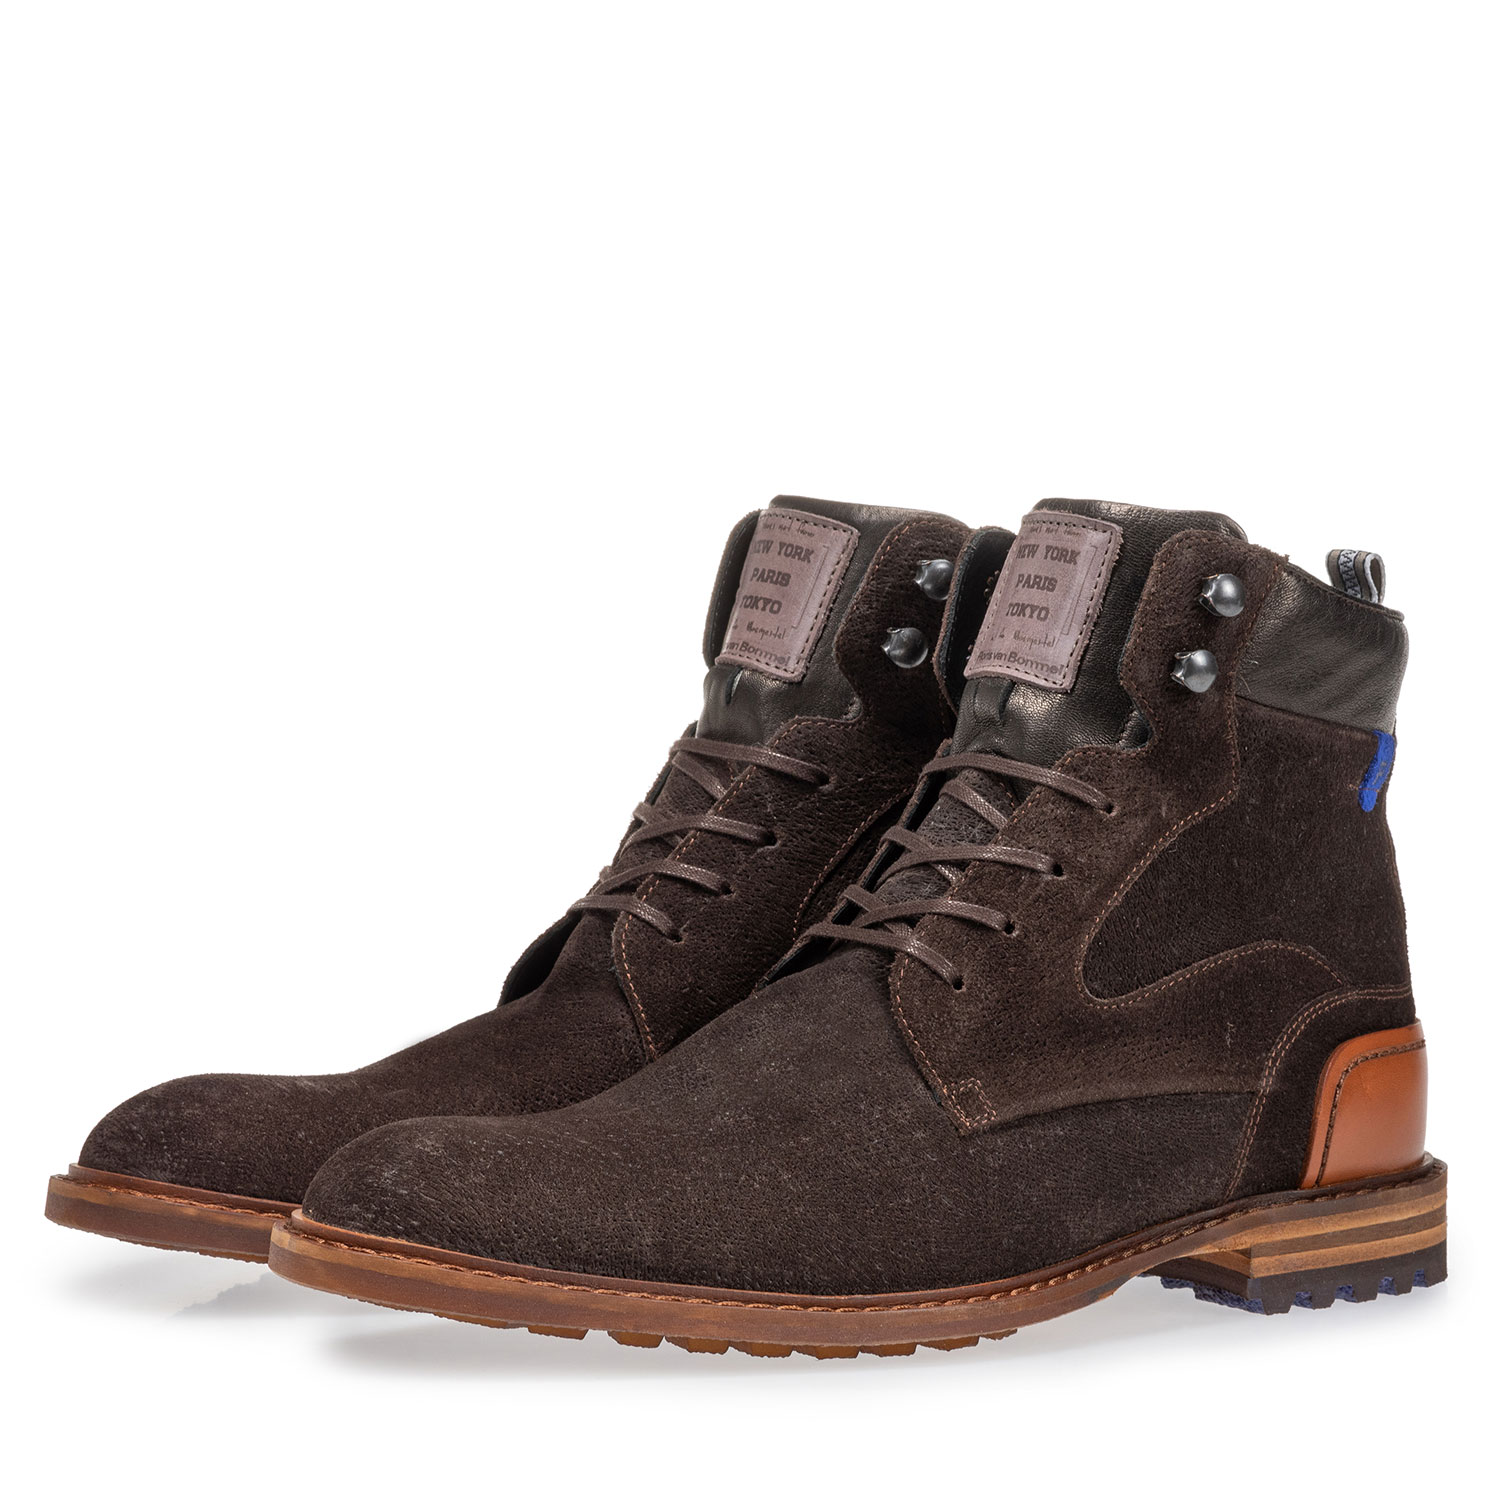 20100/03 - Crepi boot brown suede leather